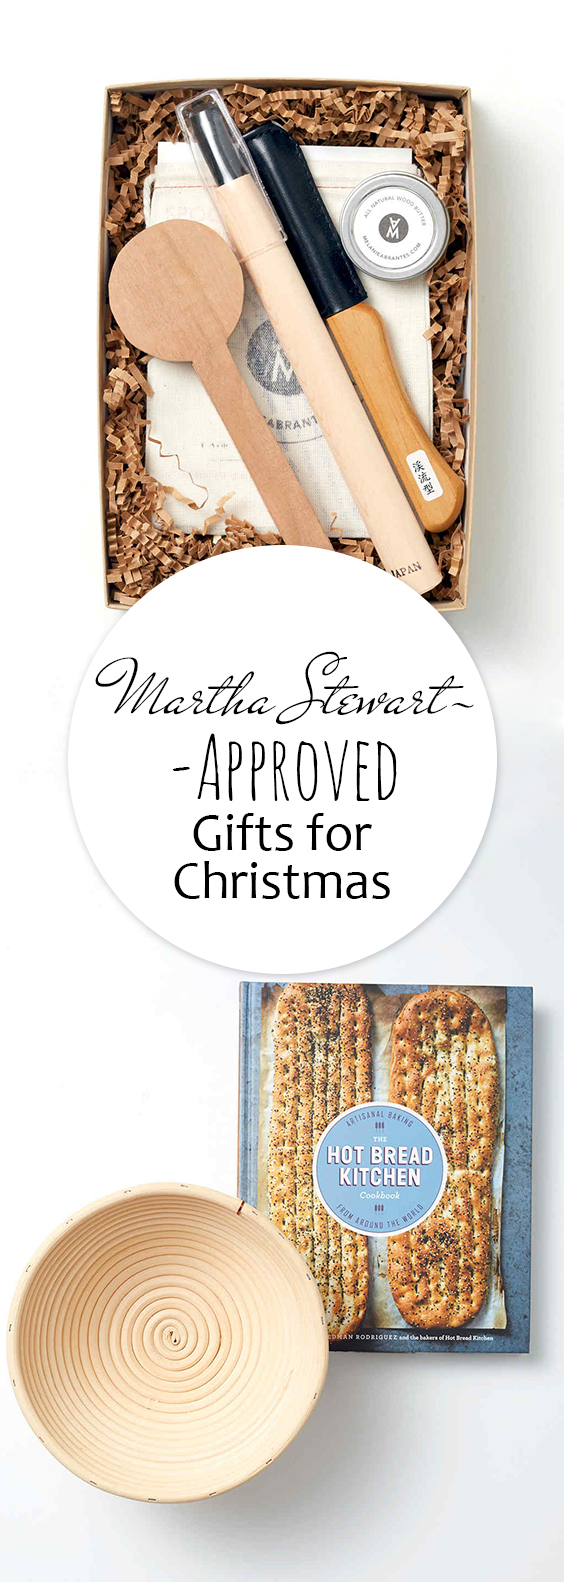 Martha Stewart-Approved Gifts for Christmas| Christmas Gifts, Holiday Gifts, Holiday Gift Ideas, DIY Holiday, Christmas, Christmas Gifts, Gift Ideas, Holiday Gift Ideas, Martha Stewart #Christmas #HolidayGifts #MarthaStewart